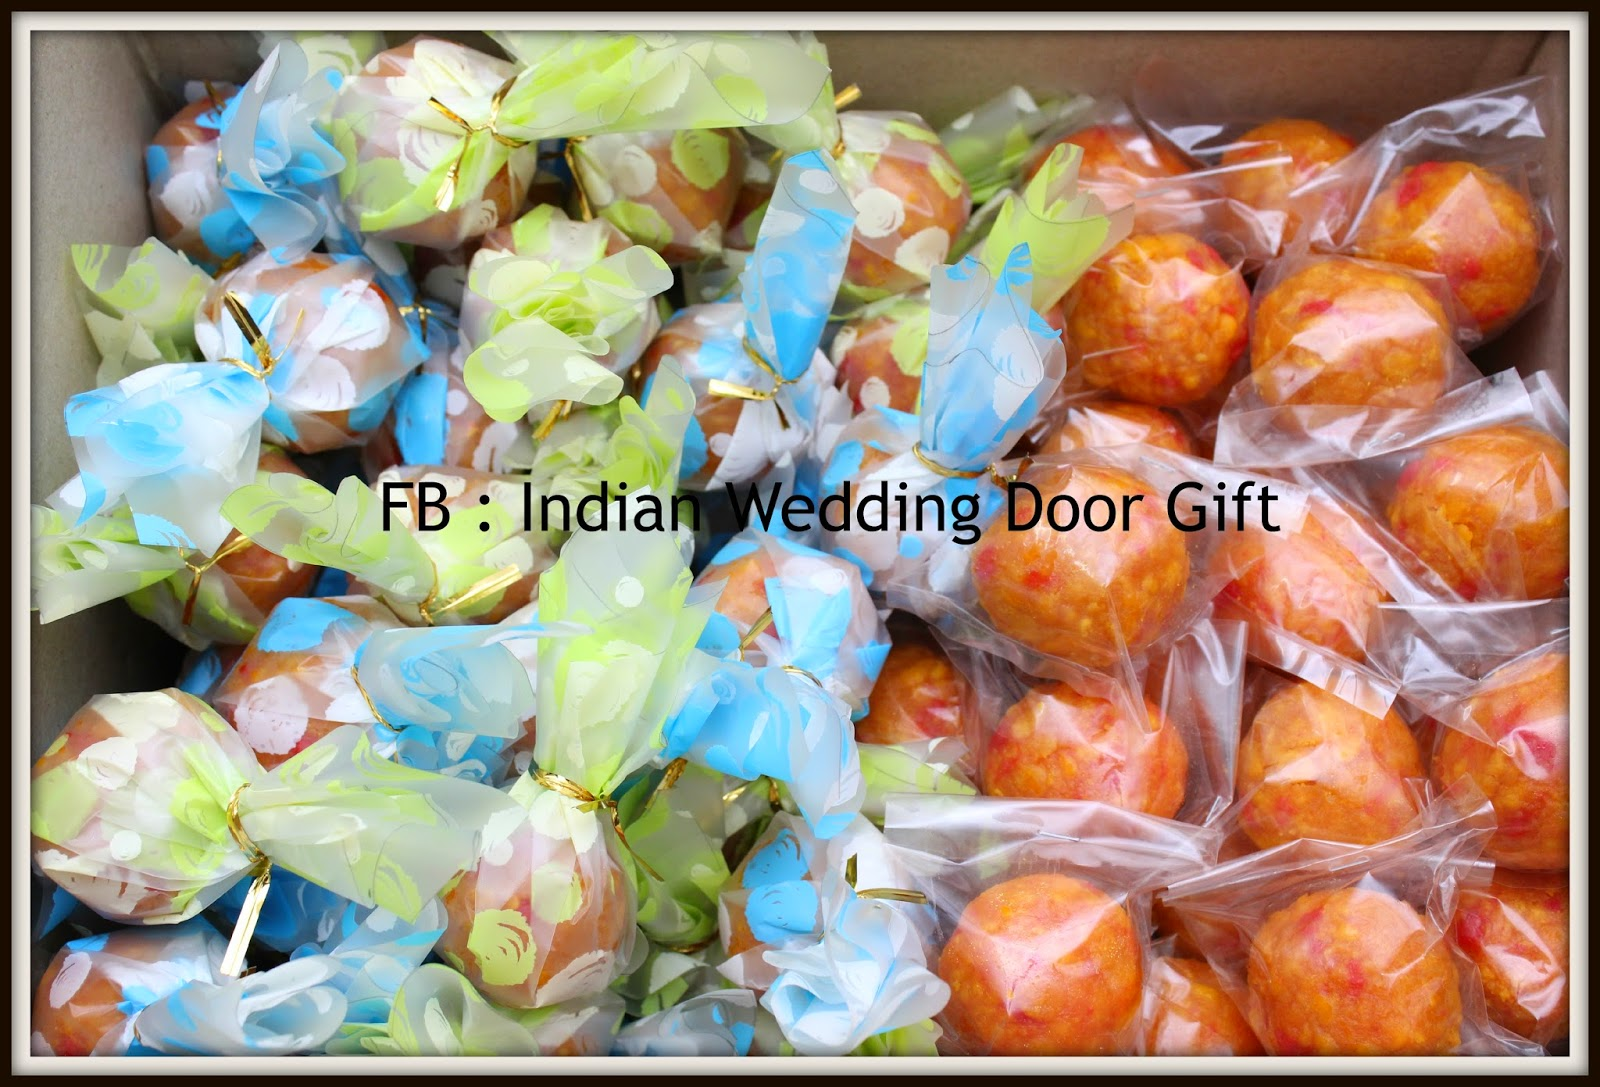 Door Gift For Wedding: Indian Wedding Door Gift: More Wedding Door Gift Favours